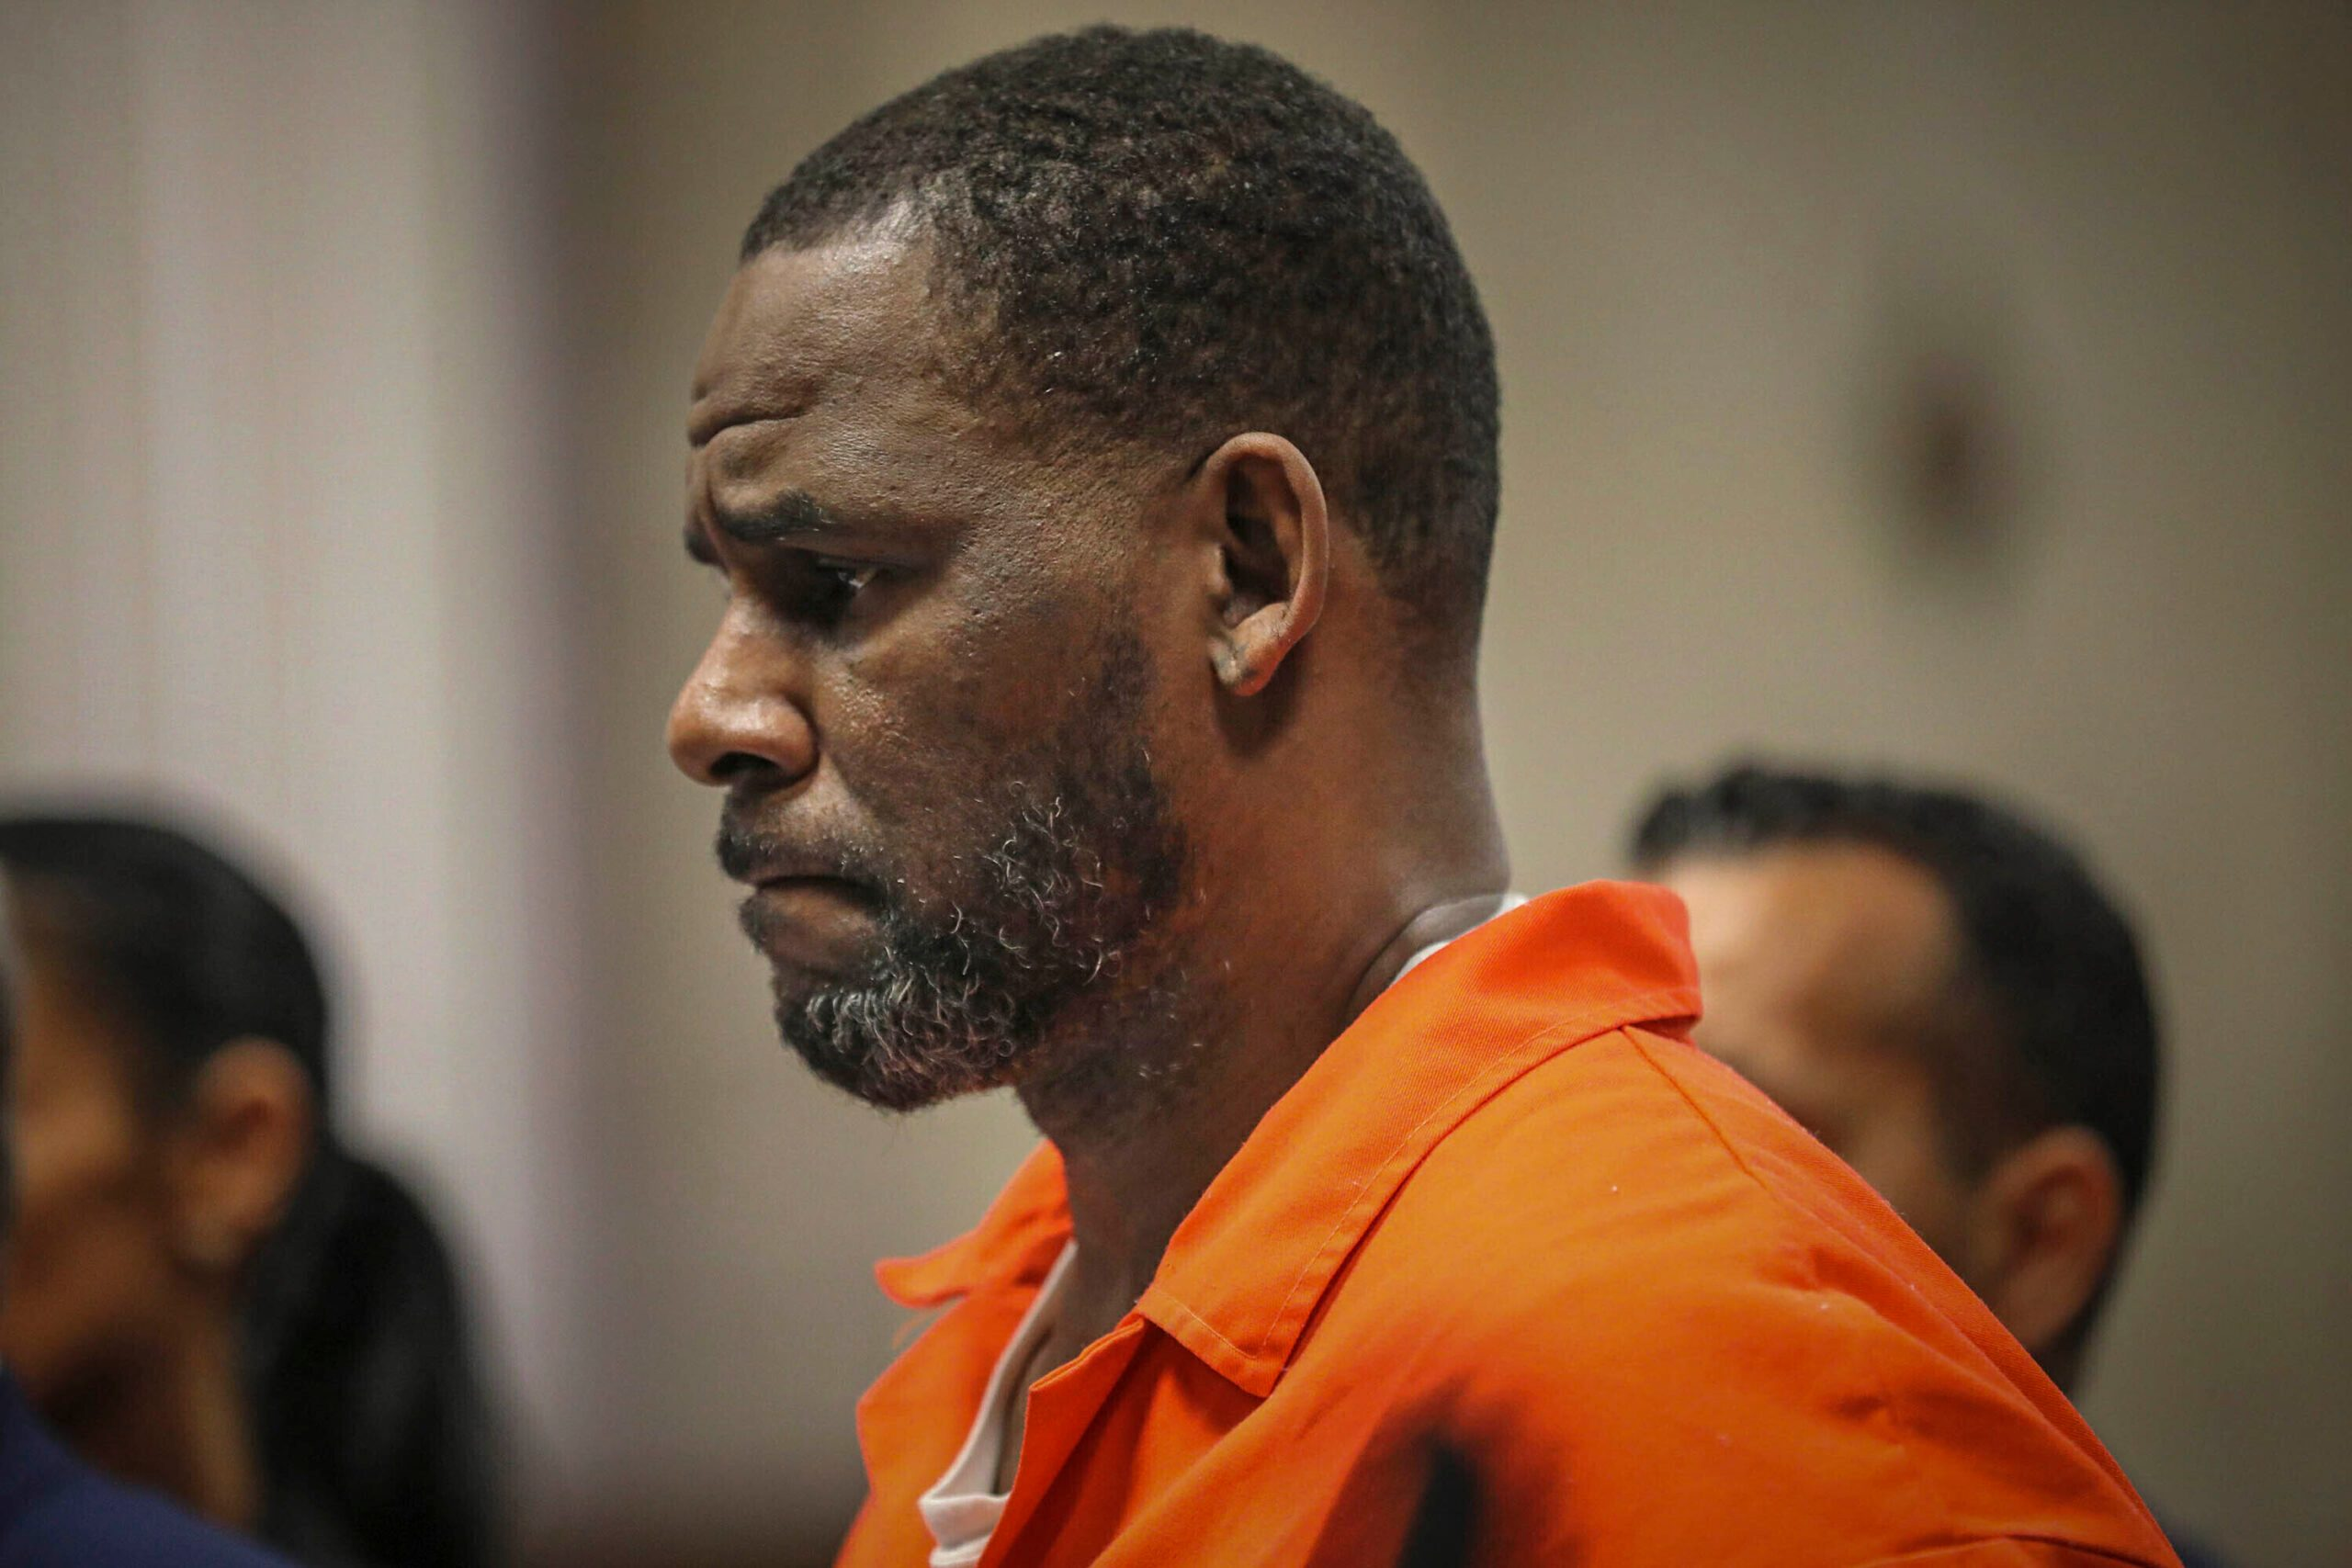 Prosecutors Air More Claims in R. Kelly Case; 1 Involves Boy - snopes